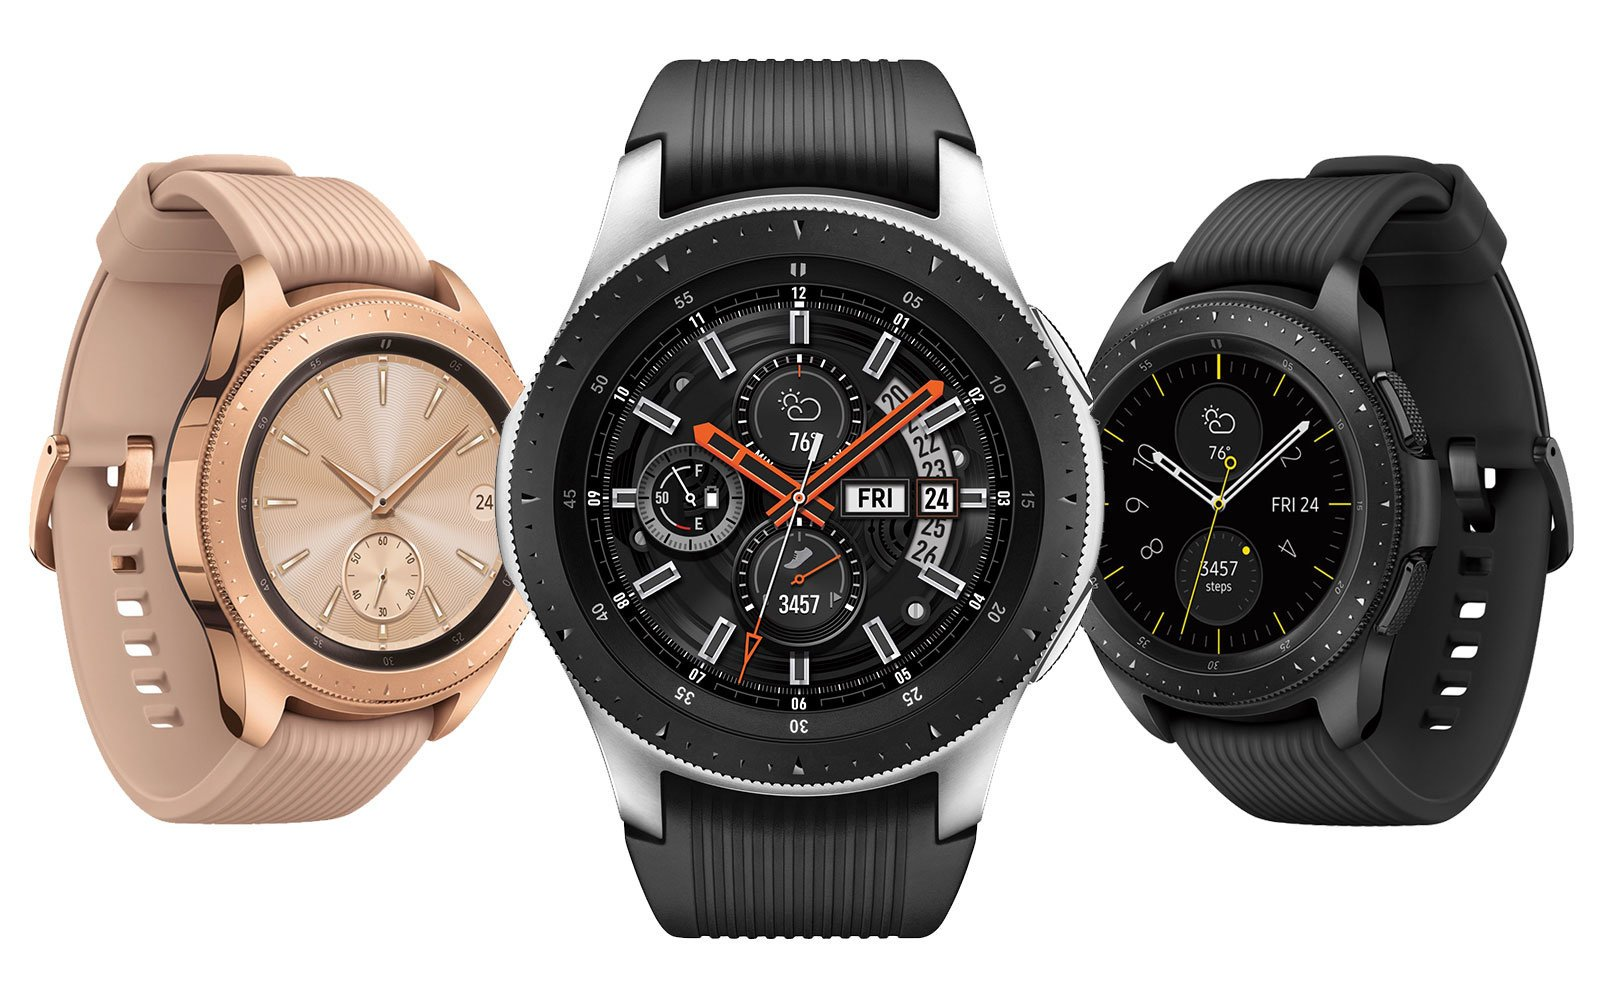 samsung, galaxy watch, galaxy watch active, galaxy watch sport, galaxy watch sport 2019